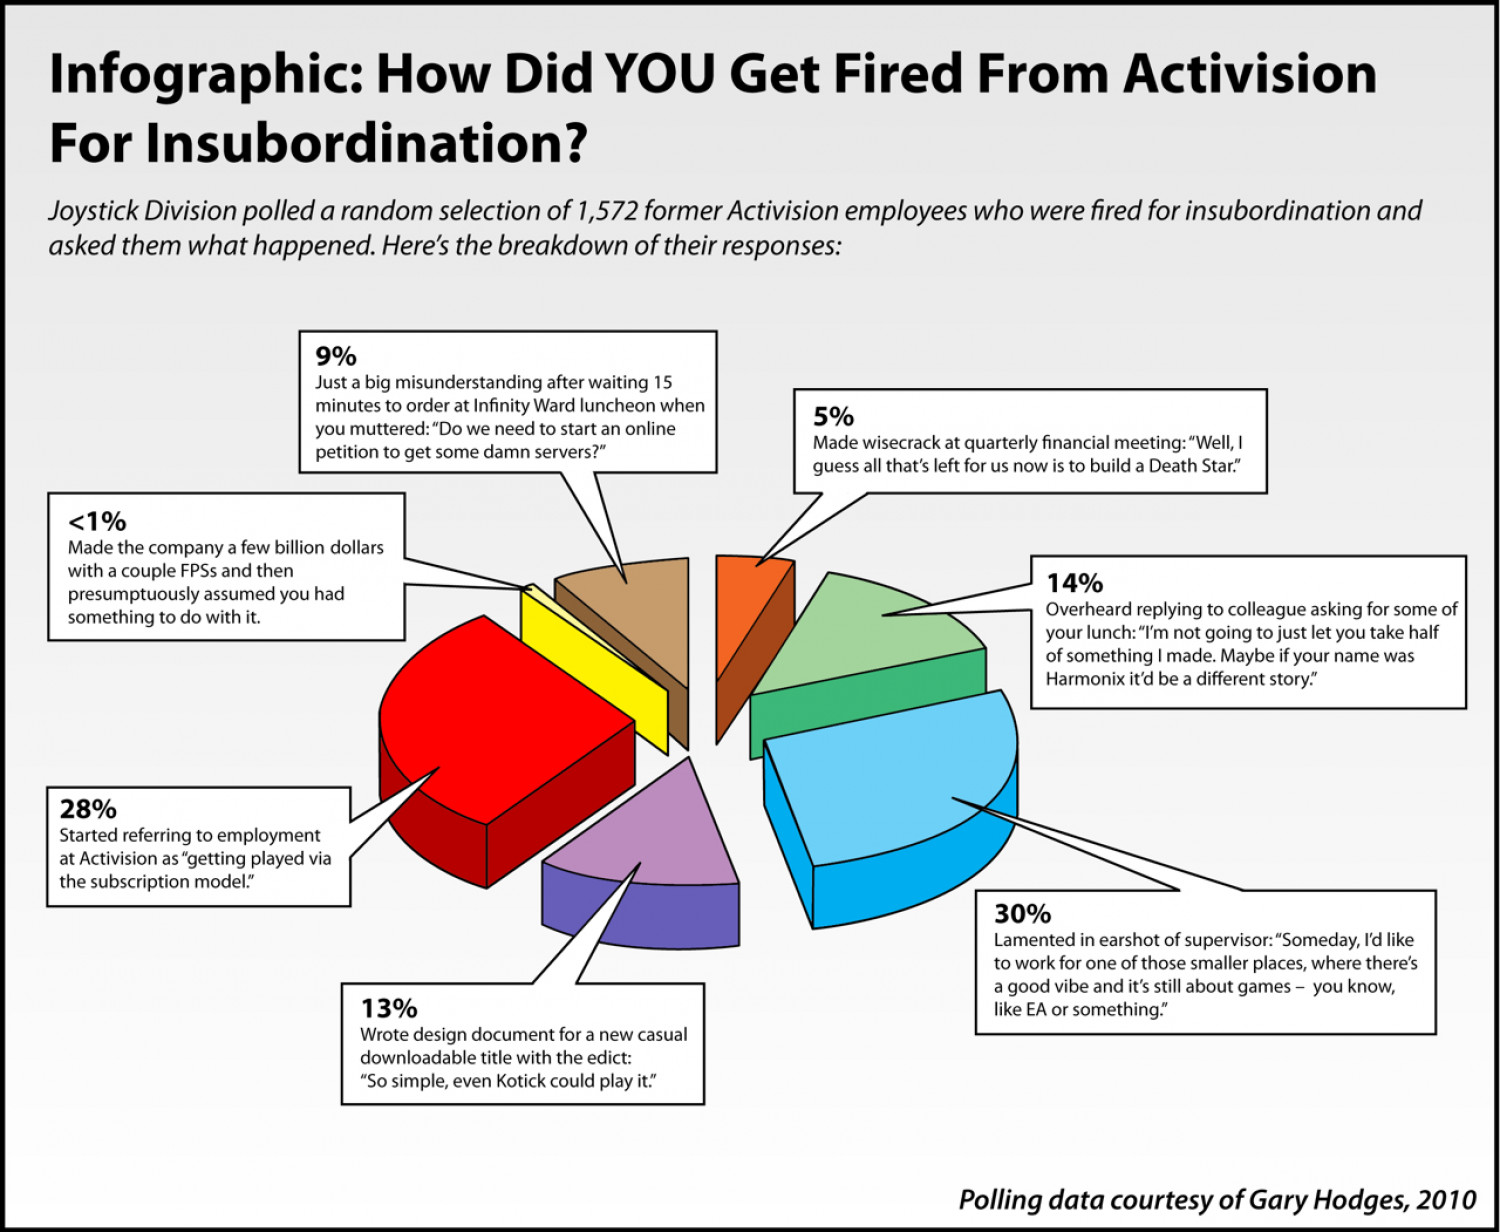 Infographic: How Did YOU Get Fired From Activision? Infographic